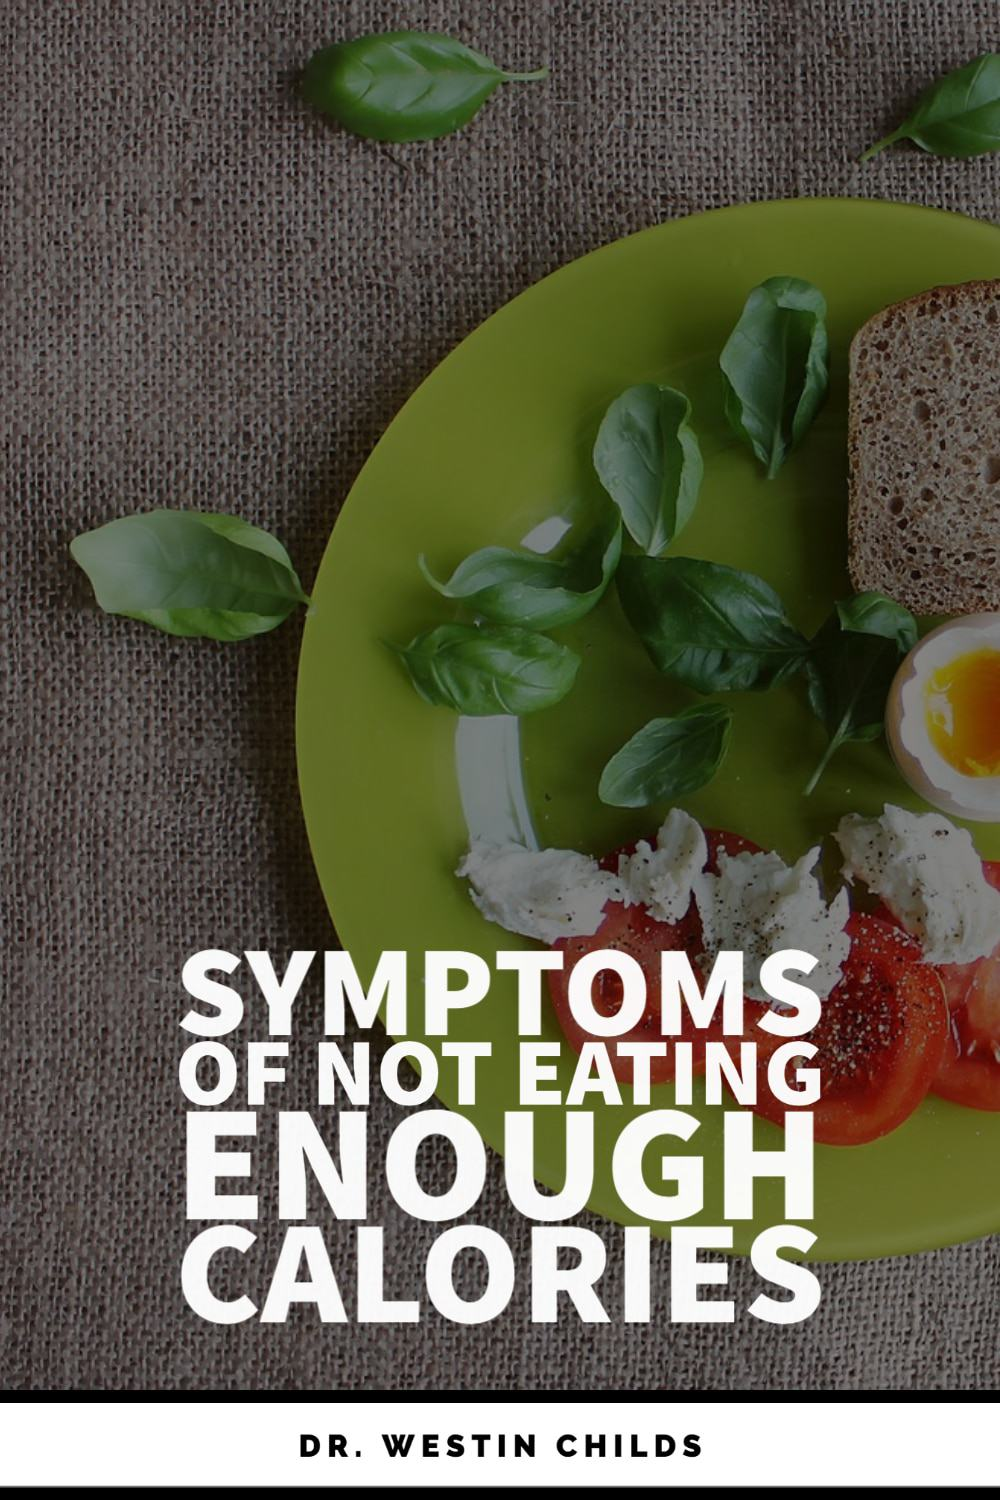 signs and symptoms you are not eating enough calories